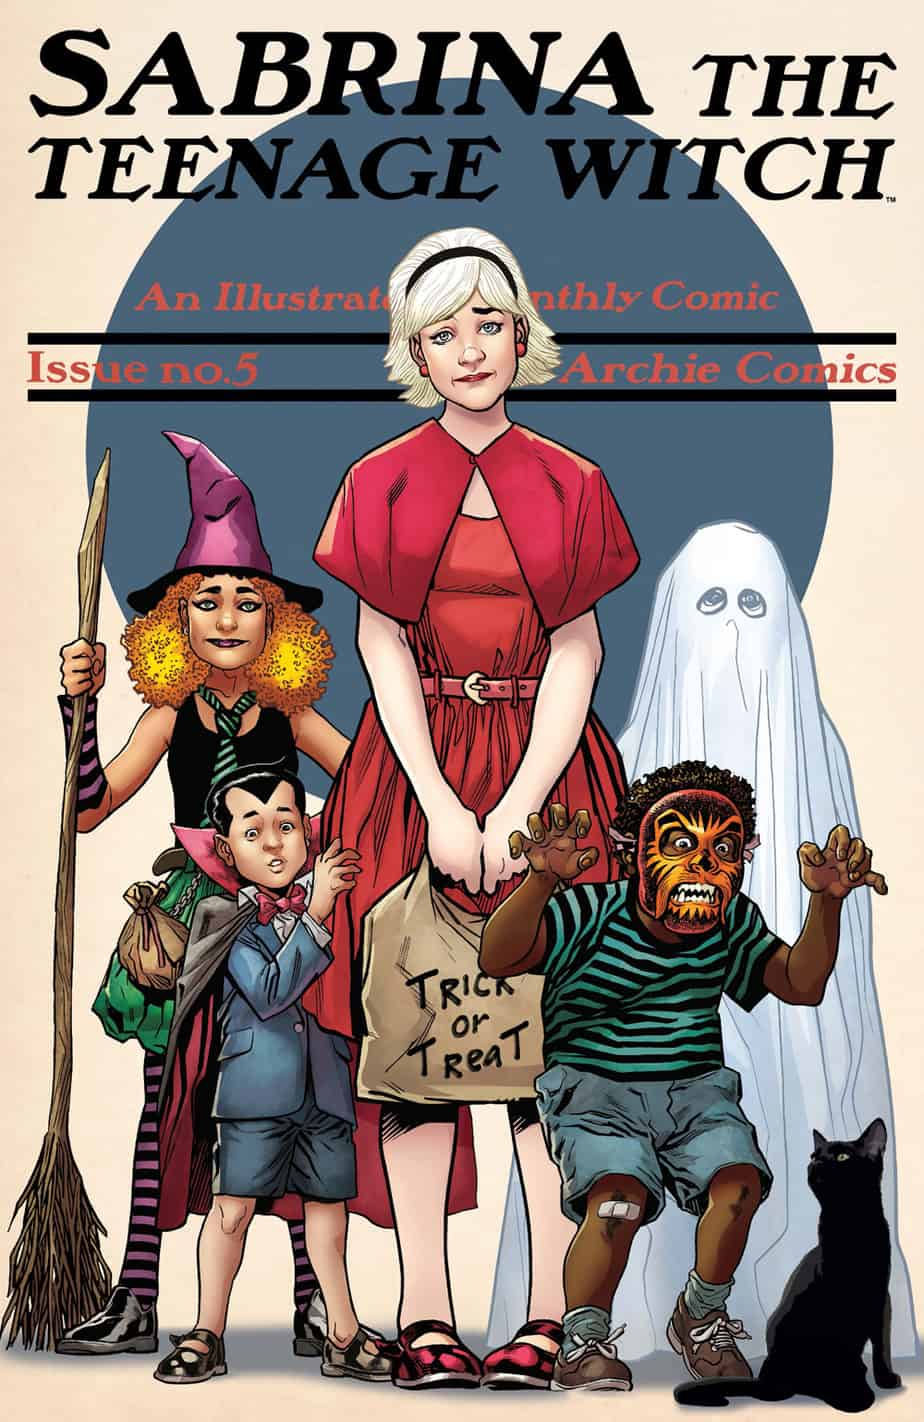 SABRINA THE TEENAGE WITCH #5 - Variant Cover by Gary Erskine